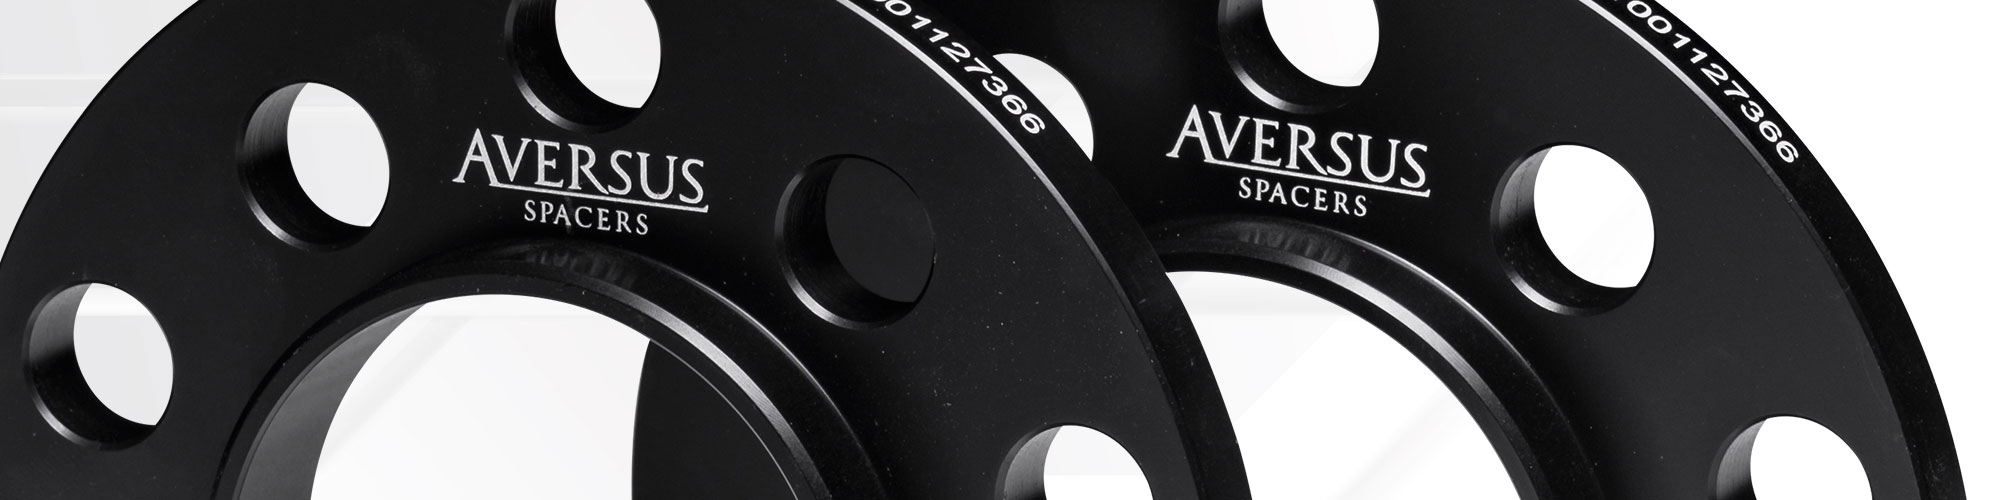 Wheelmaster Aversus SPACERS